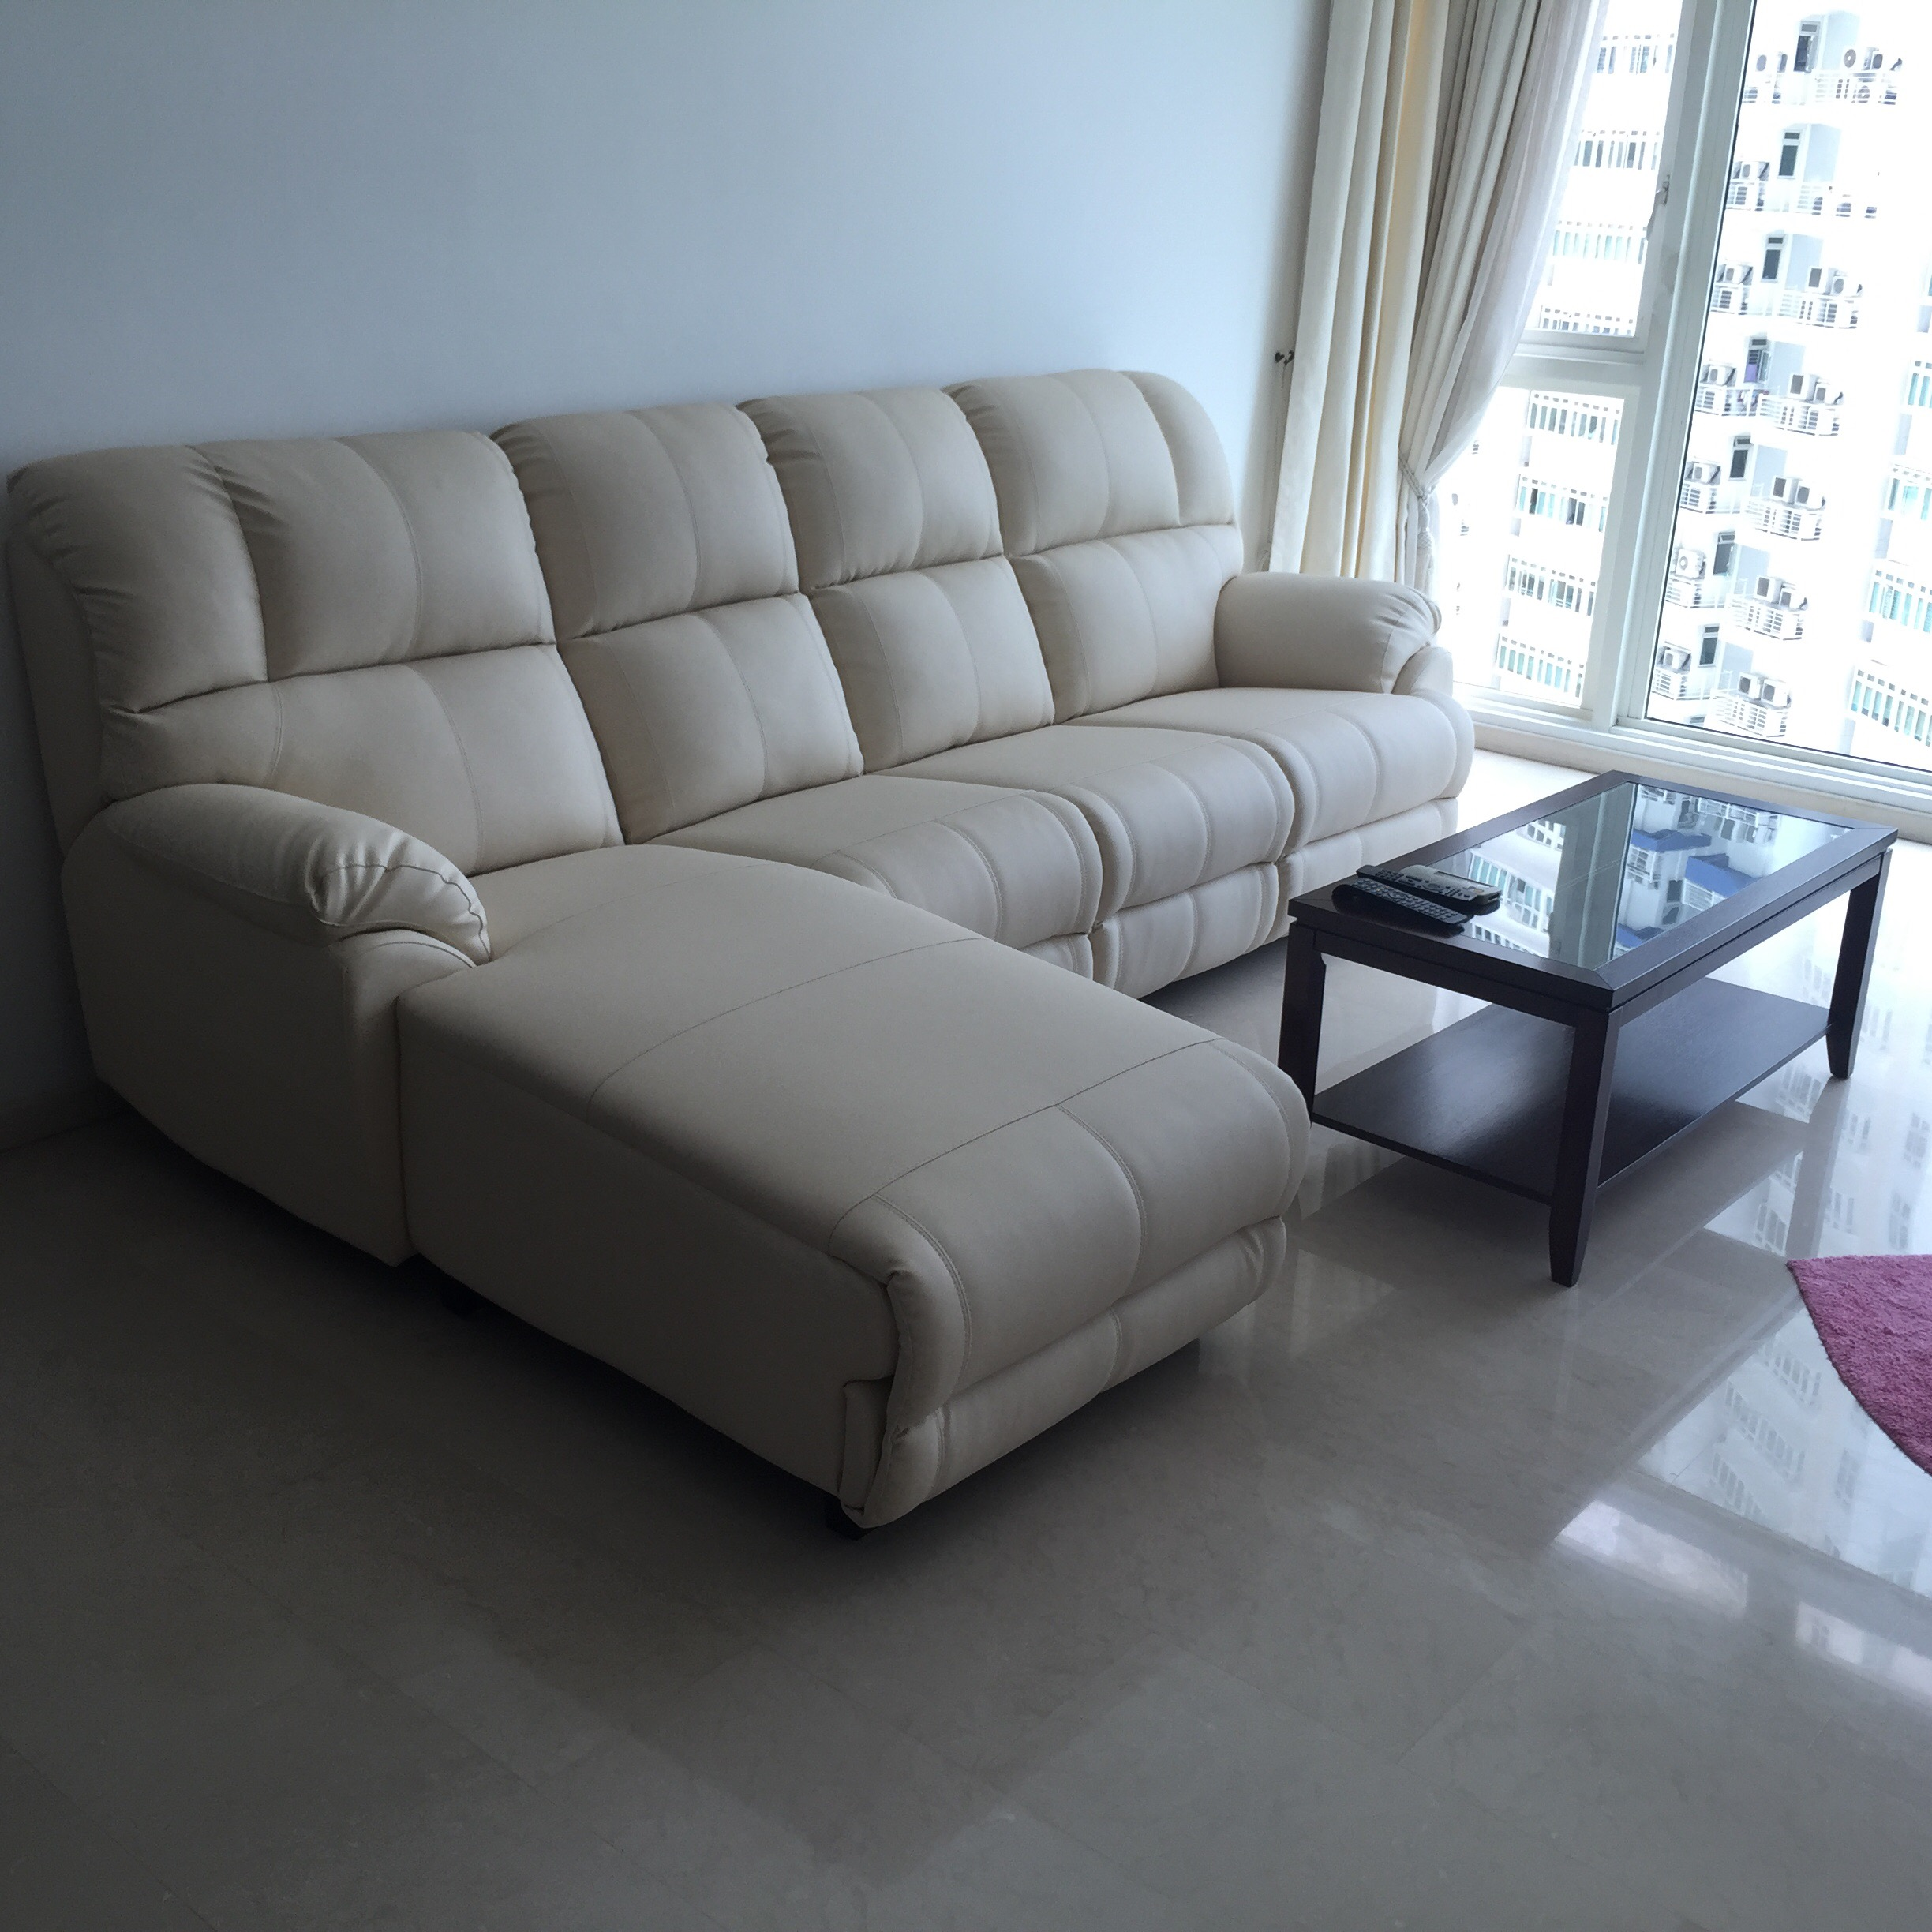 good sofa bed singapore costco leather warranty cheap furniture brokeasshome